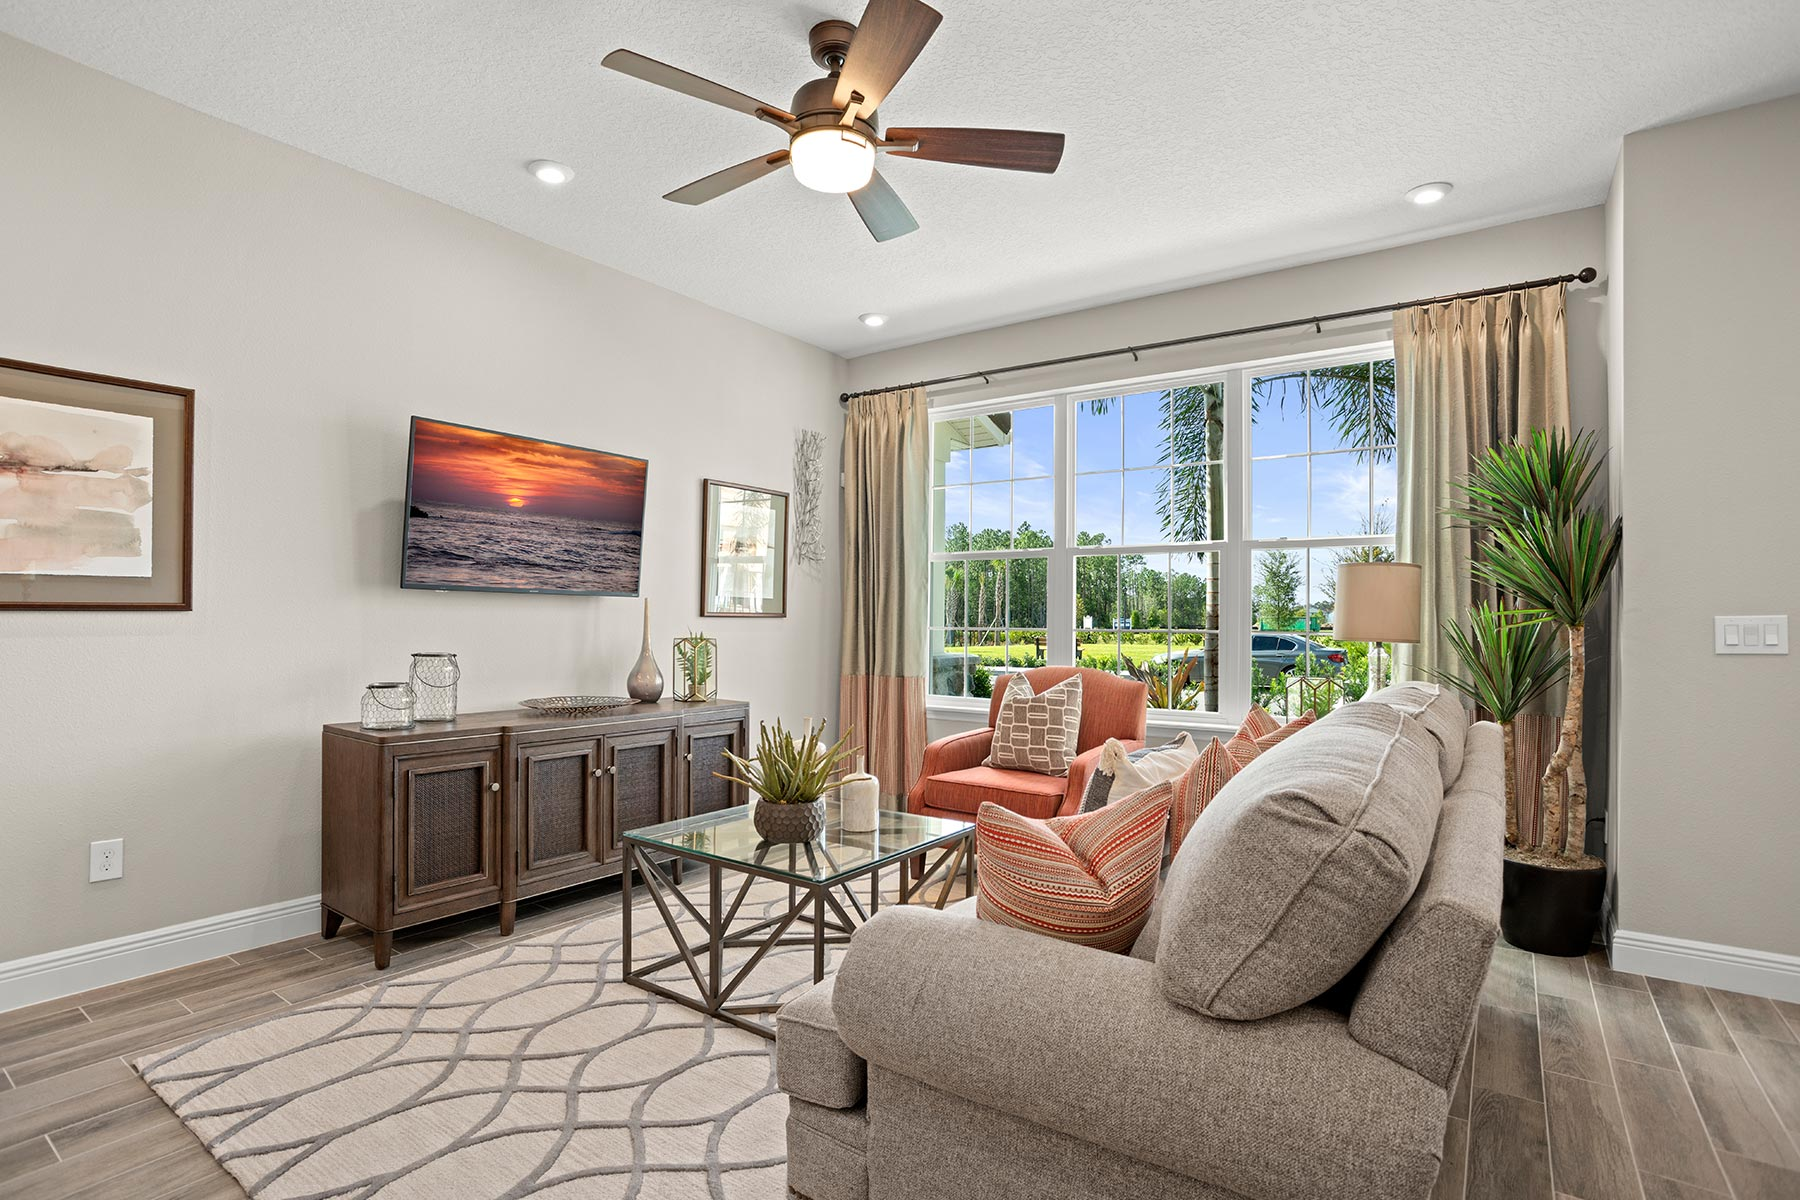 Amber Plan Greatroom at Legado in Windermere Florida by Mattamy Homes